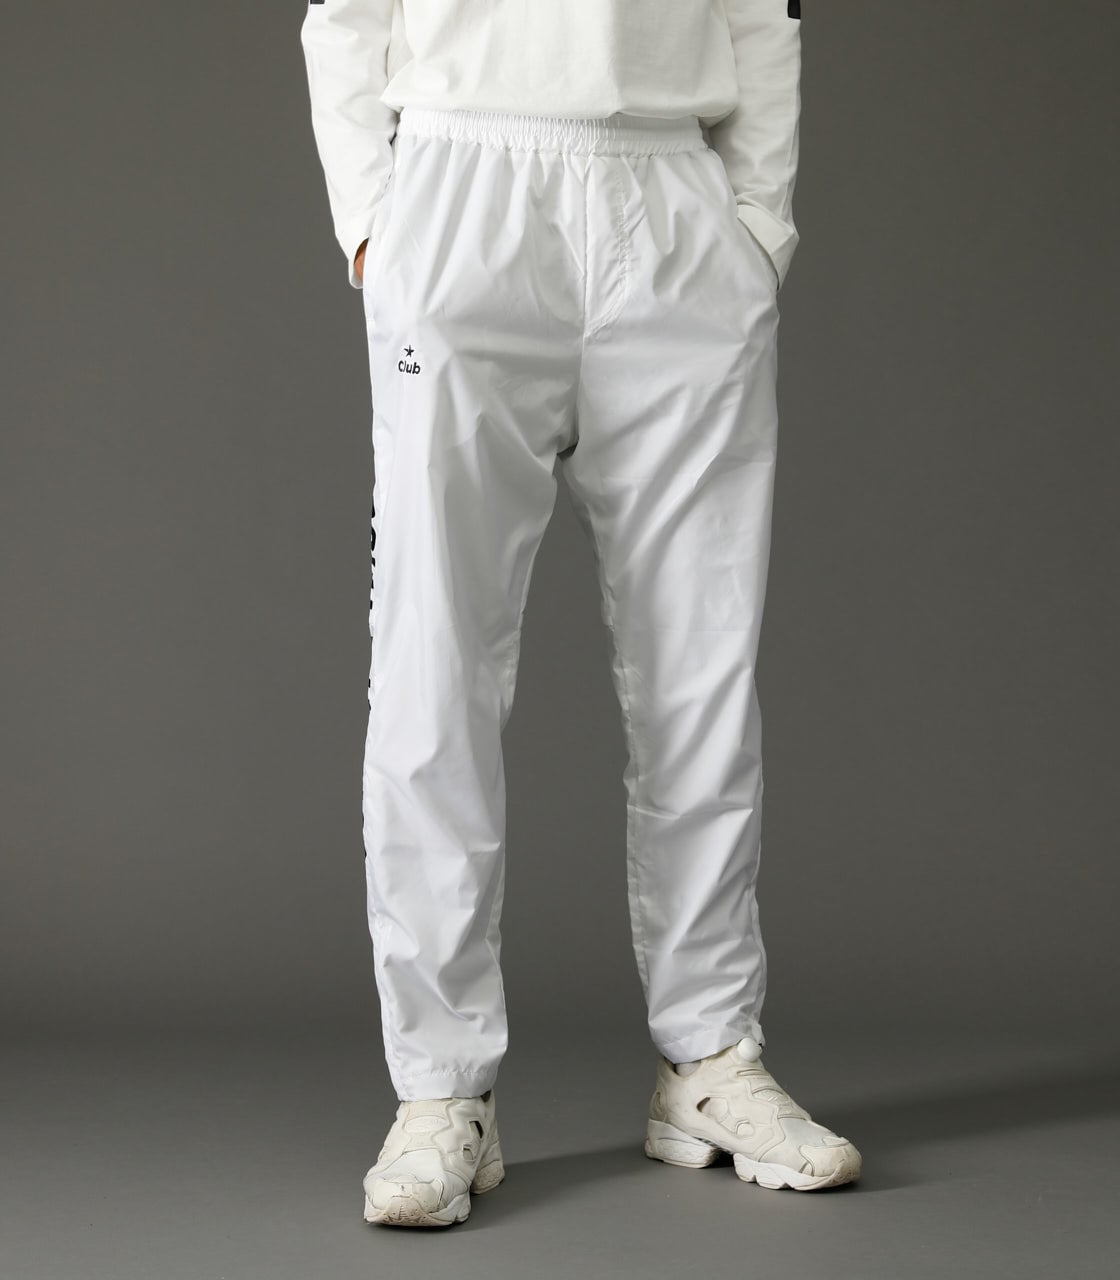 【AZUL BY MOUSSY】CLUB AZUL WARMUP PANTS【MOOK47掲載 97026】 詳細画像 WHT 1